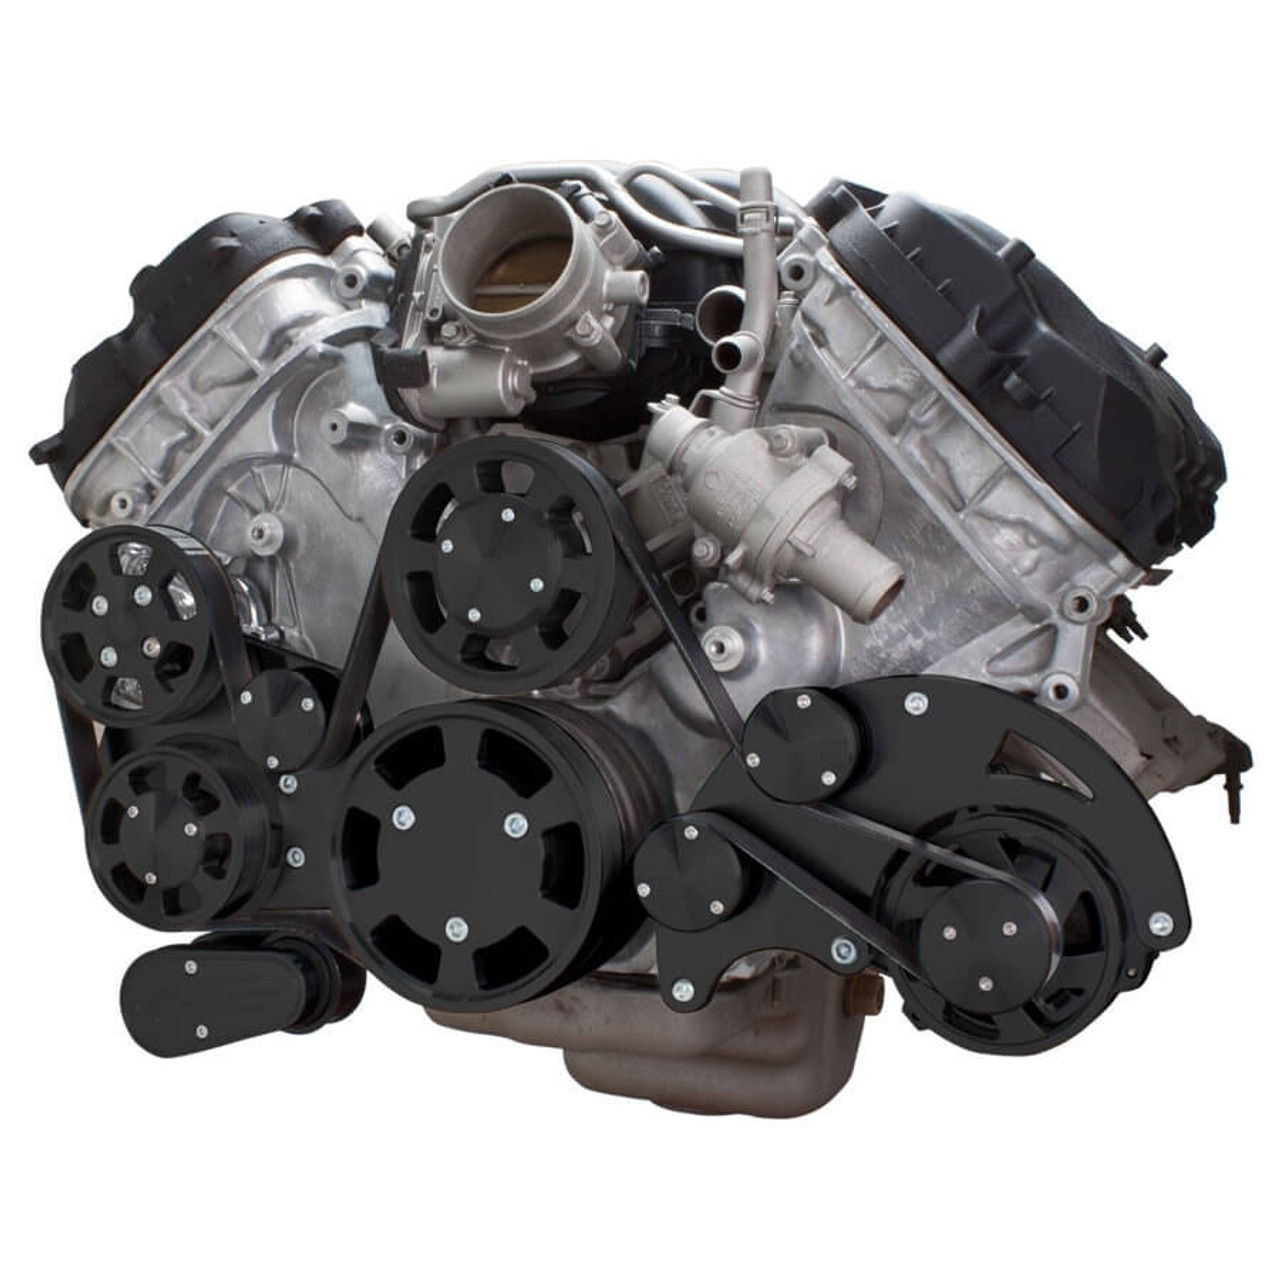 small resolution of stealth black serpentine system for ford coyote 5 0 alternator power steering